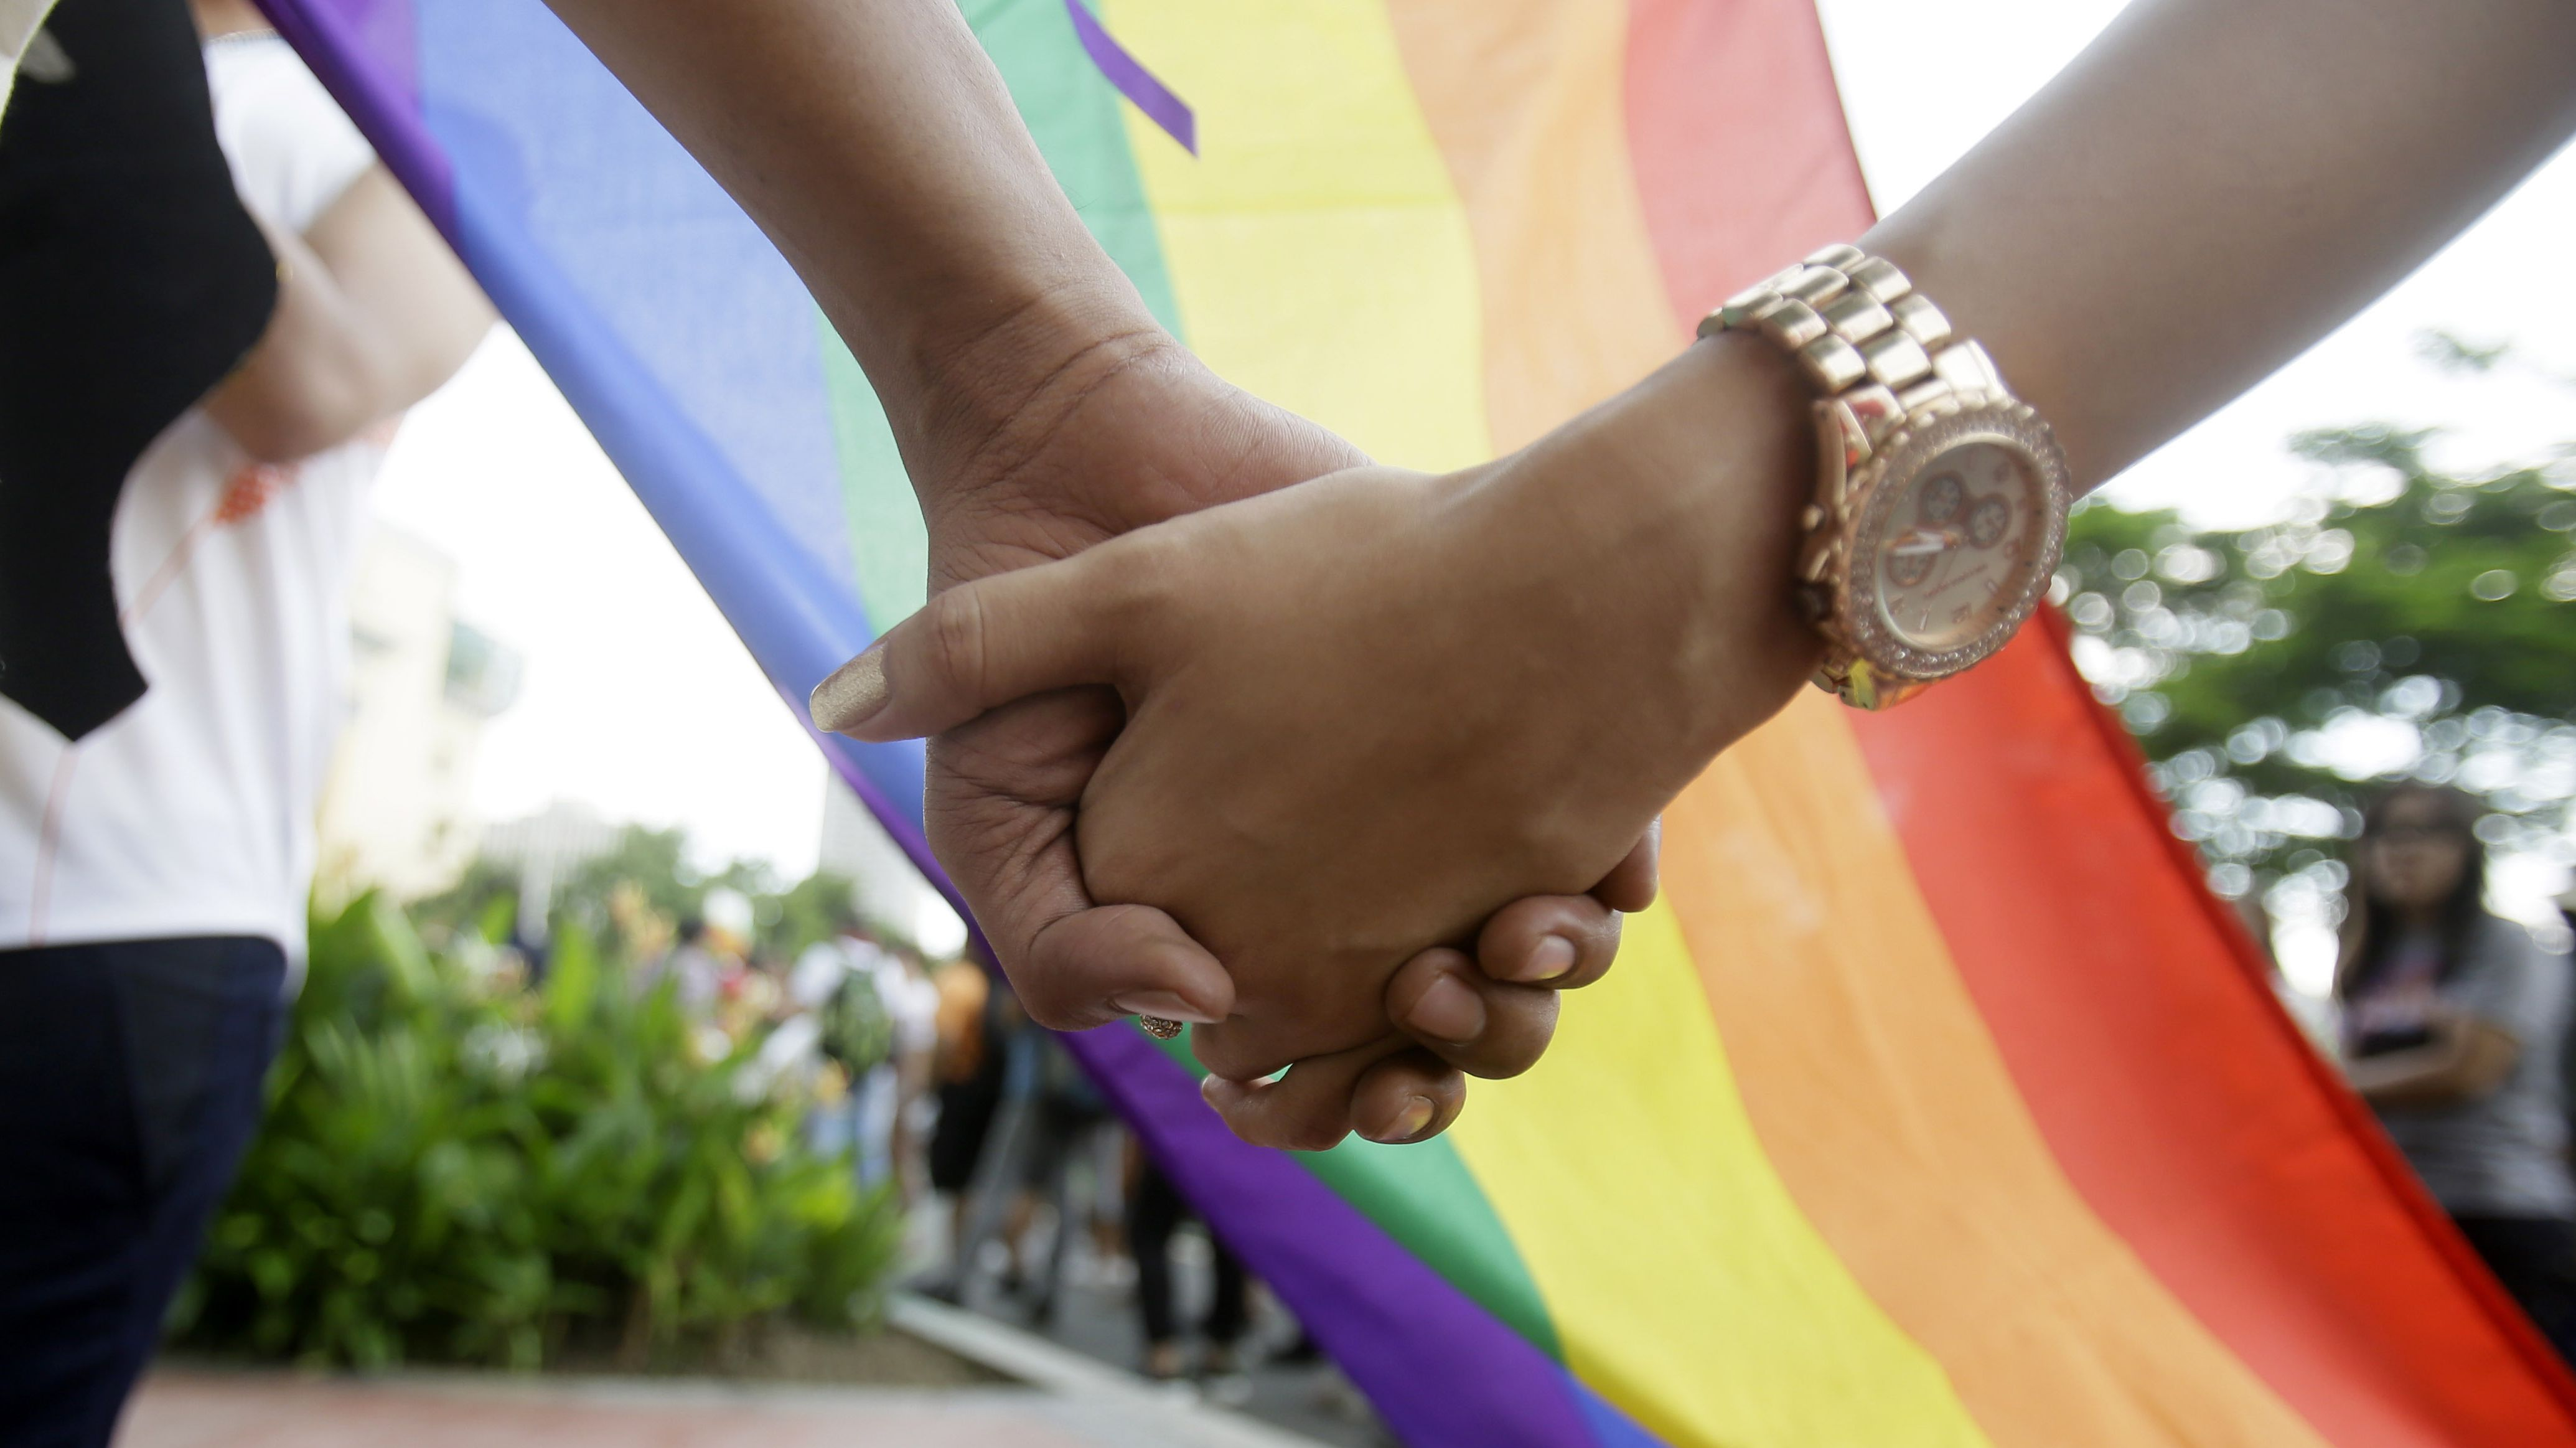 """Filipino LGBTs (Lesbians Gays Bisexual and Transgenders) hold hands as they gather for a Gay Pride rally Saturday, June 27, 2015 in Mania, Philippines to push for LGBT rights and to celebrate the U.S. Supreme Court decision recognizing gay marriages in all U.S. states as a victory for their cause. The rally was scheduled to commemorate the 1969 demonstrations in New York City that started the gay rights movement around the world. Jonas Bagas, executive director of the pro-LGBT rights group TLF Share, said the U.S. court ruling """"will reverberate in other corners of the world."""" (AP Photo/Bullit Marquez)"""